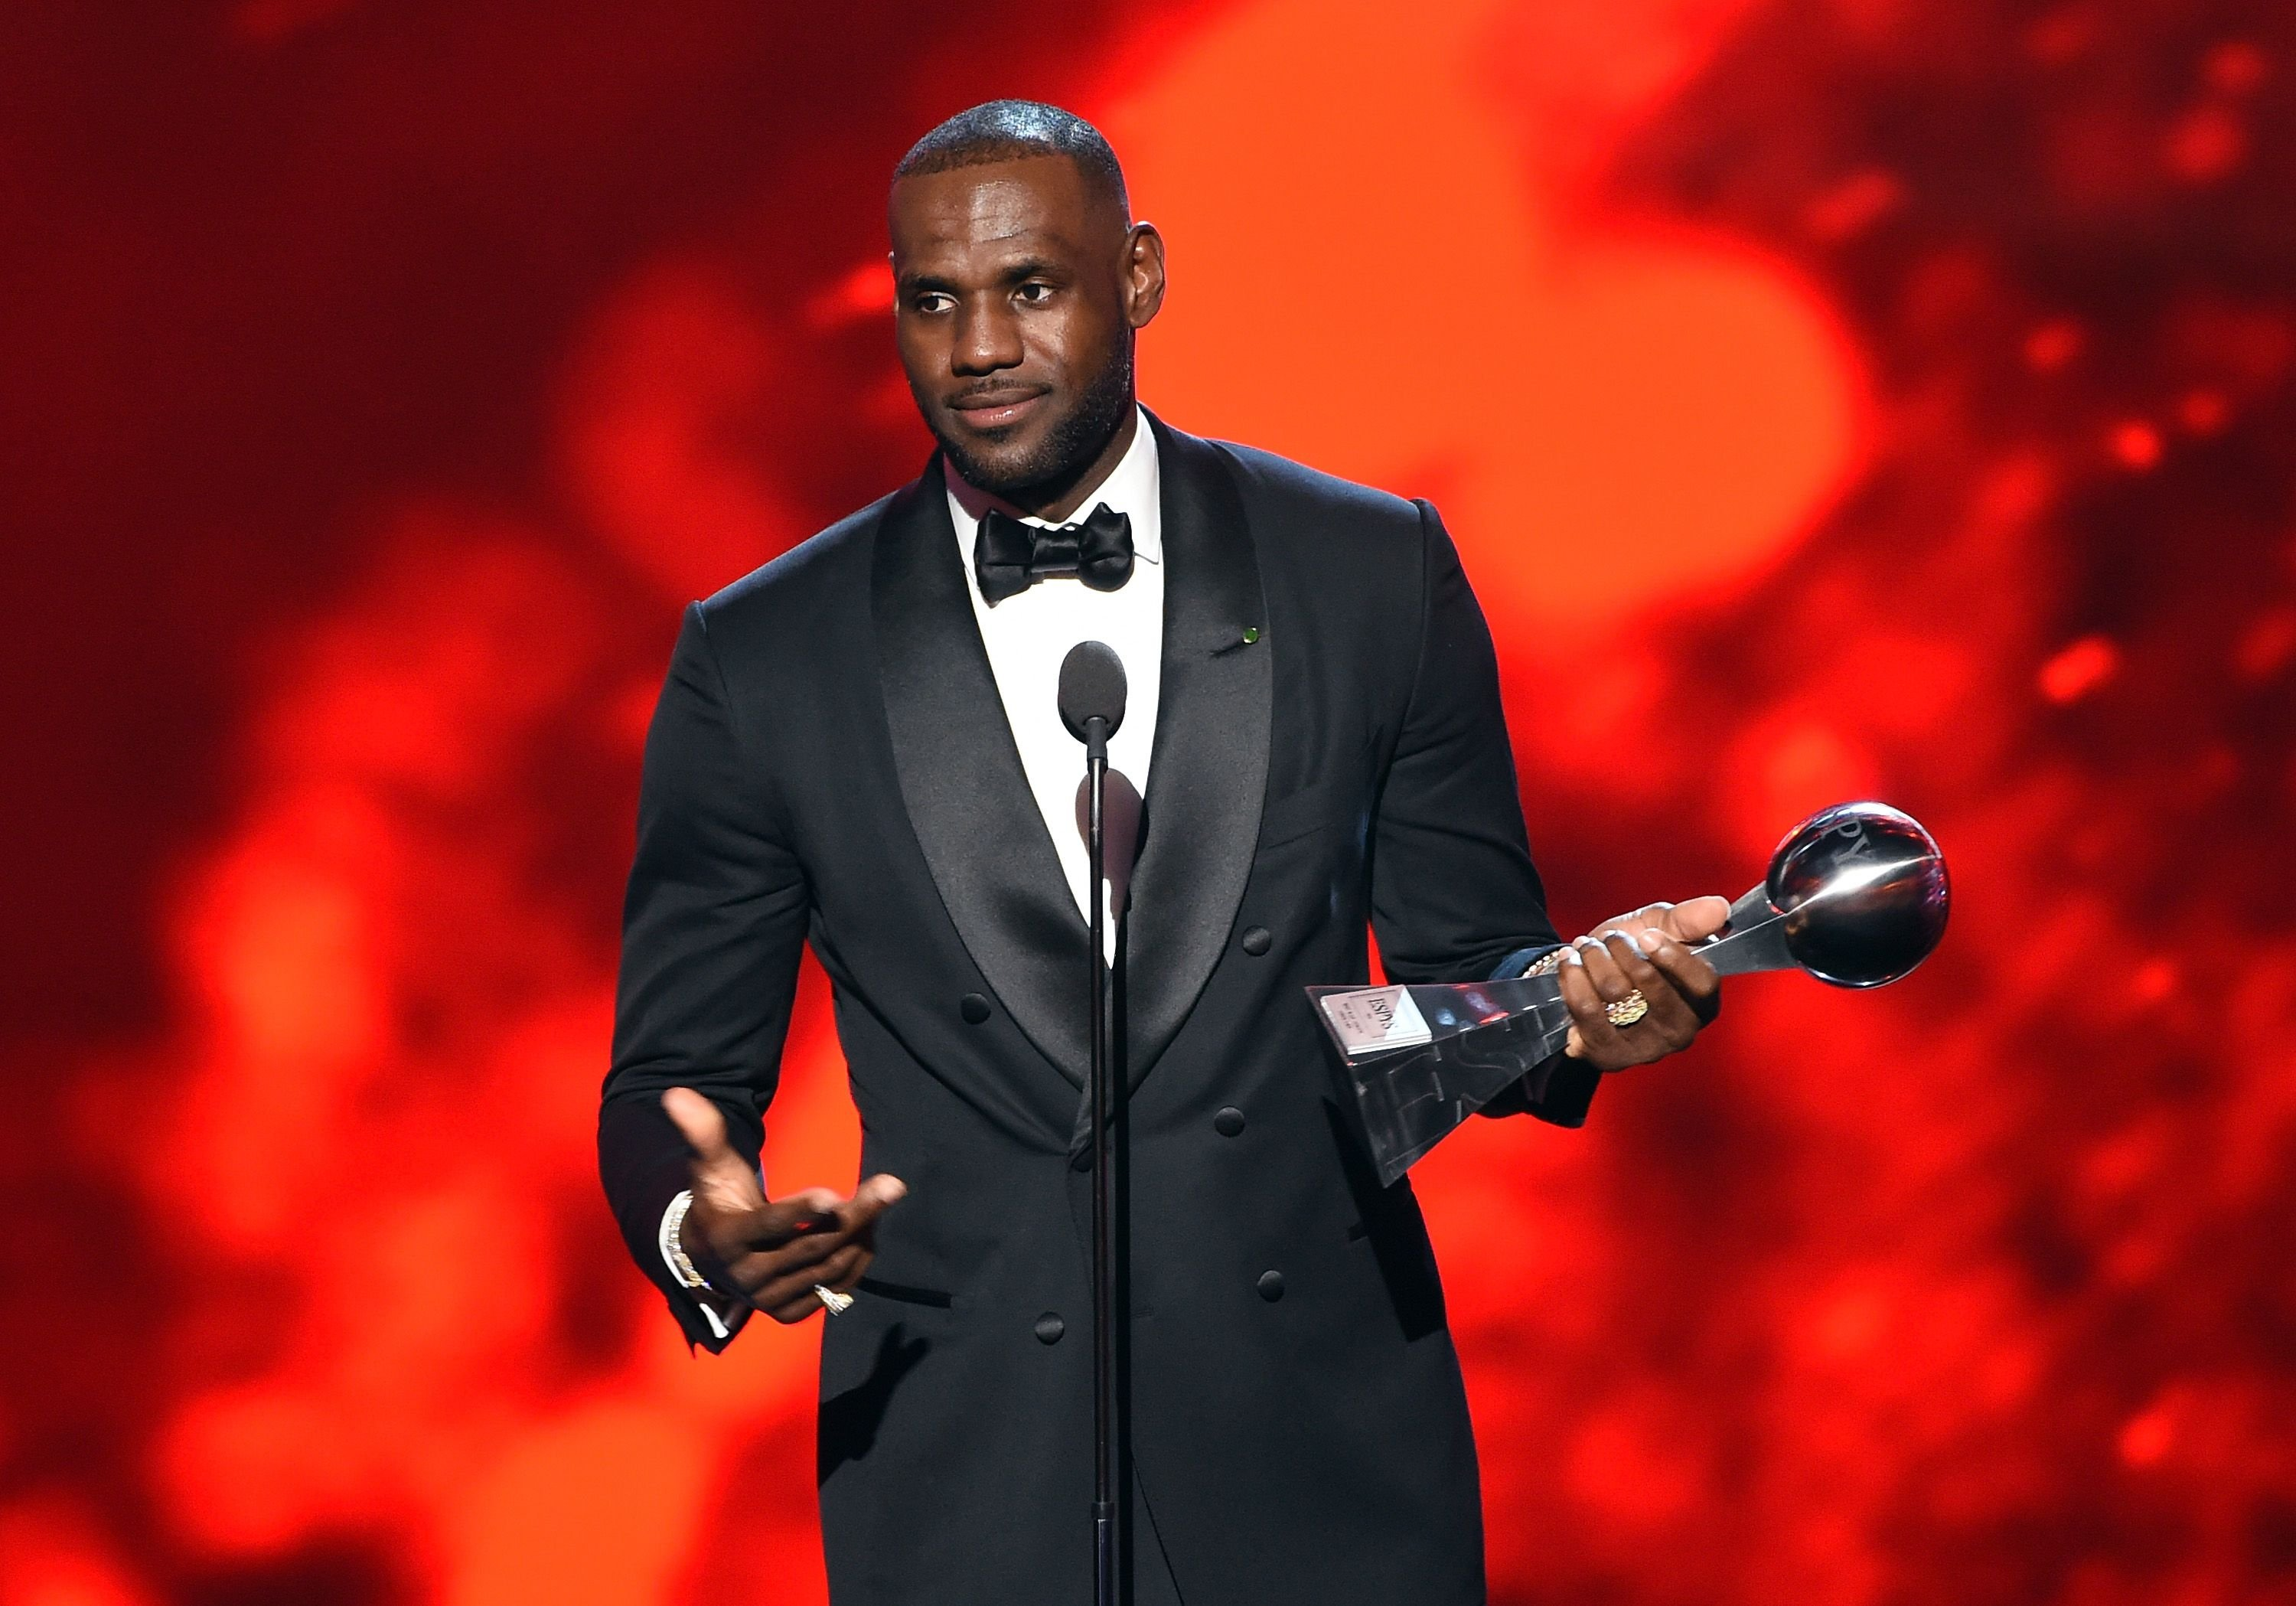 NBA player LeBron James accepts the Best Male Athlete award during the 2016 ESPYS at the Microsoft Theater on July 13, 2016, in LA, California | Photo: Getty Images